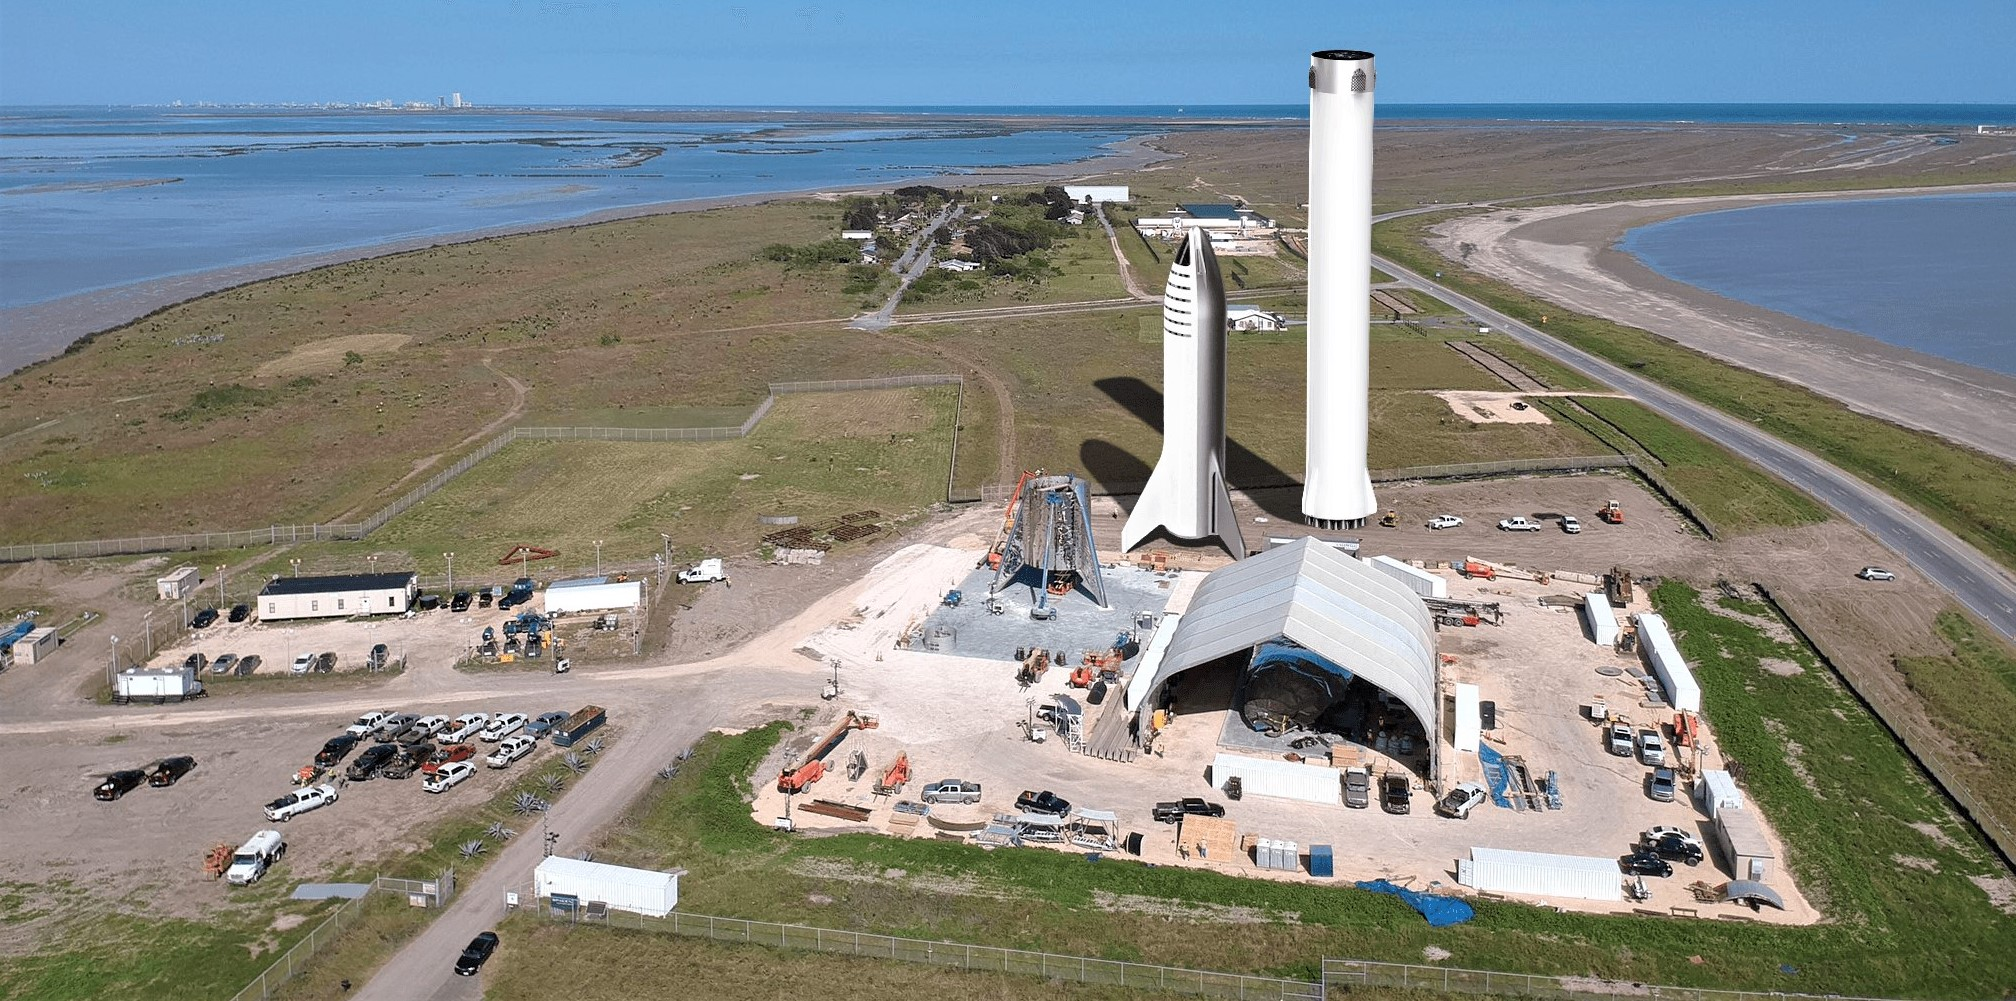 Spacex Will Build And Launch Starship Super Heavy In Texas